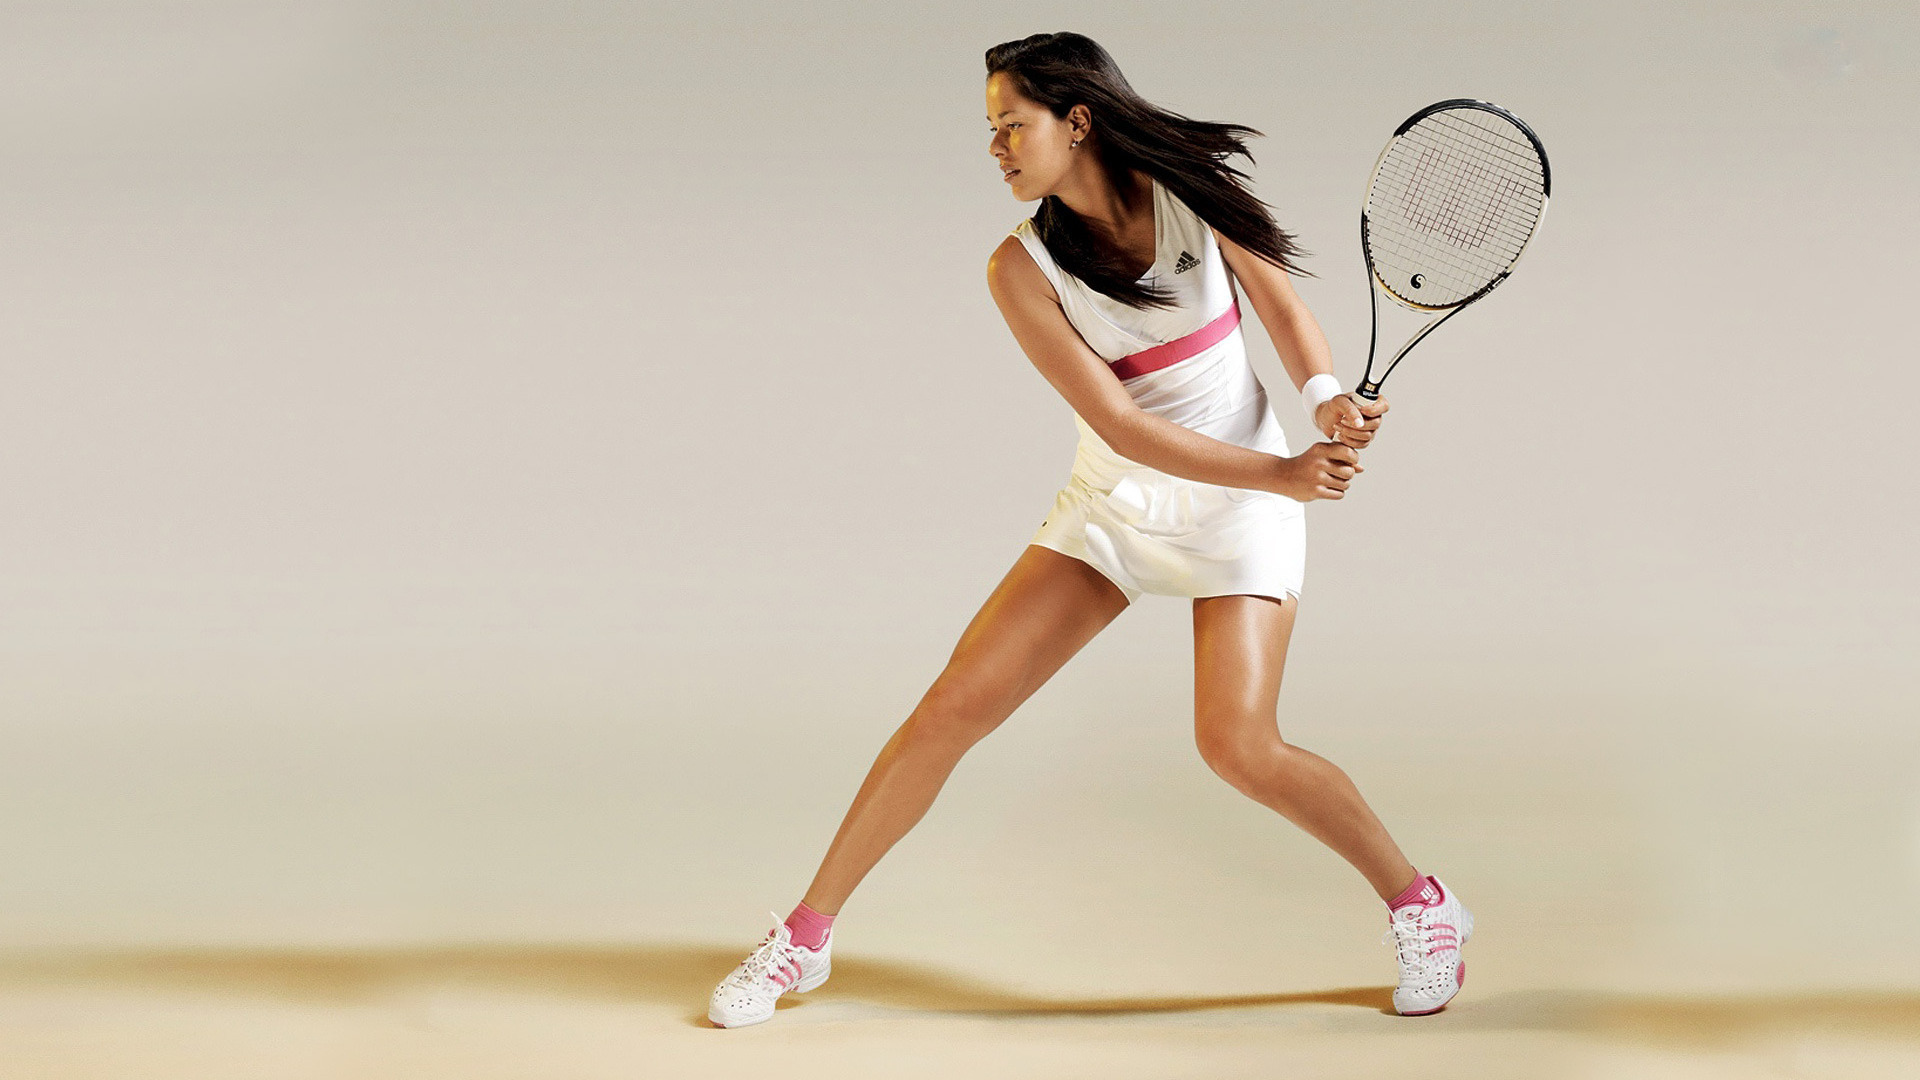 These Are The Must Have Tennis Outfits For Every Woman